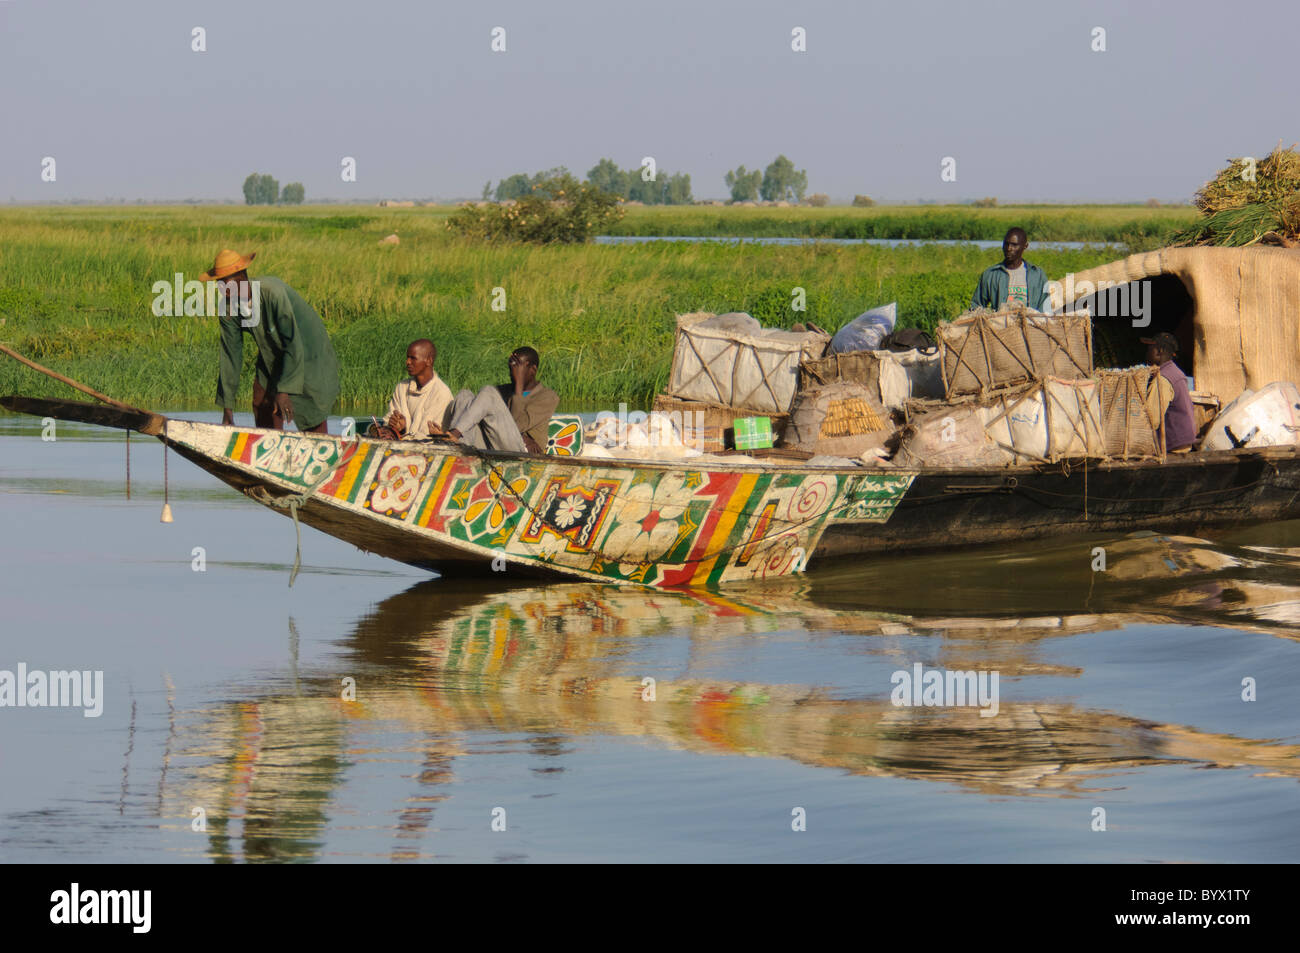 Passengers and steersman sitting on the front side of a transportation pinasse, cruising the Niger Inland Delta. - Stock Image